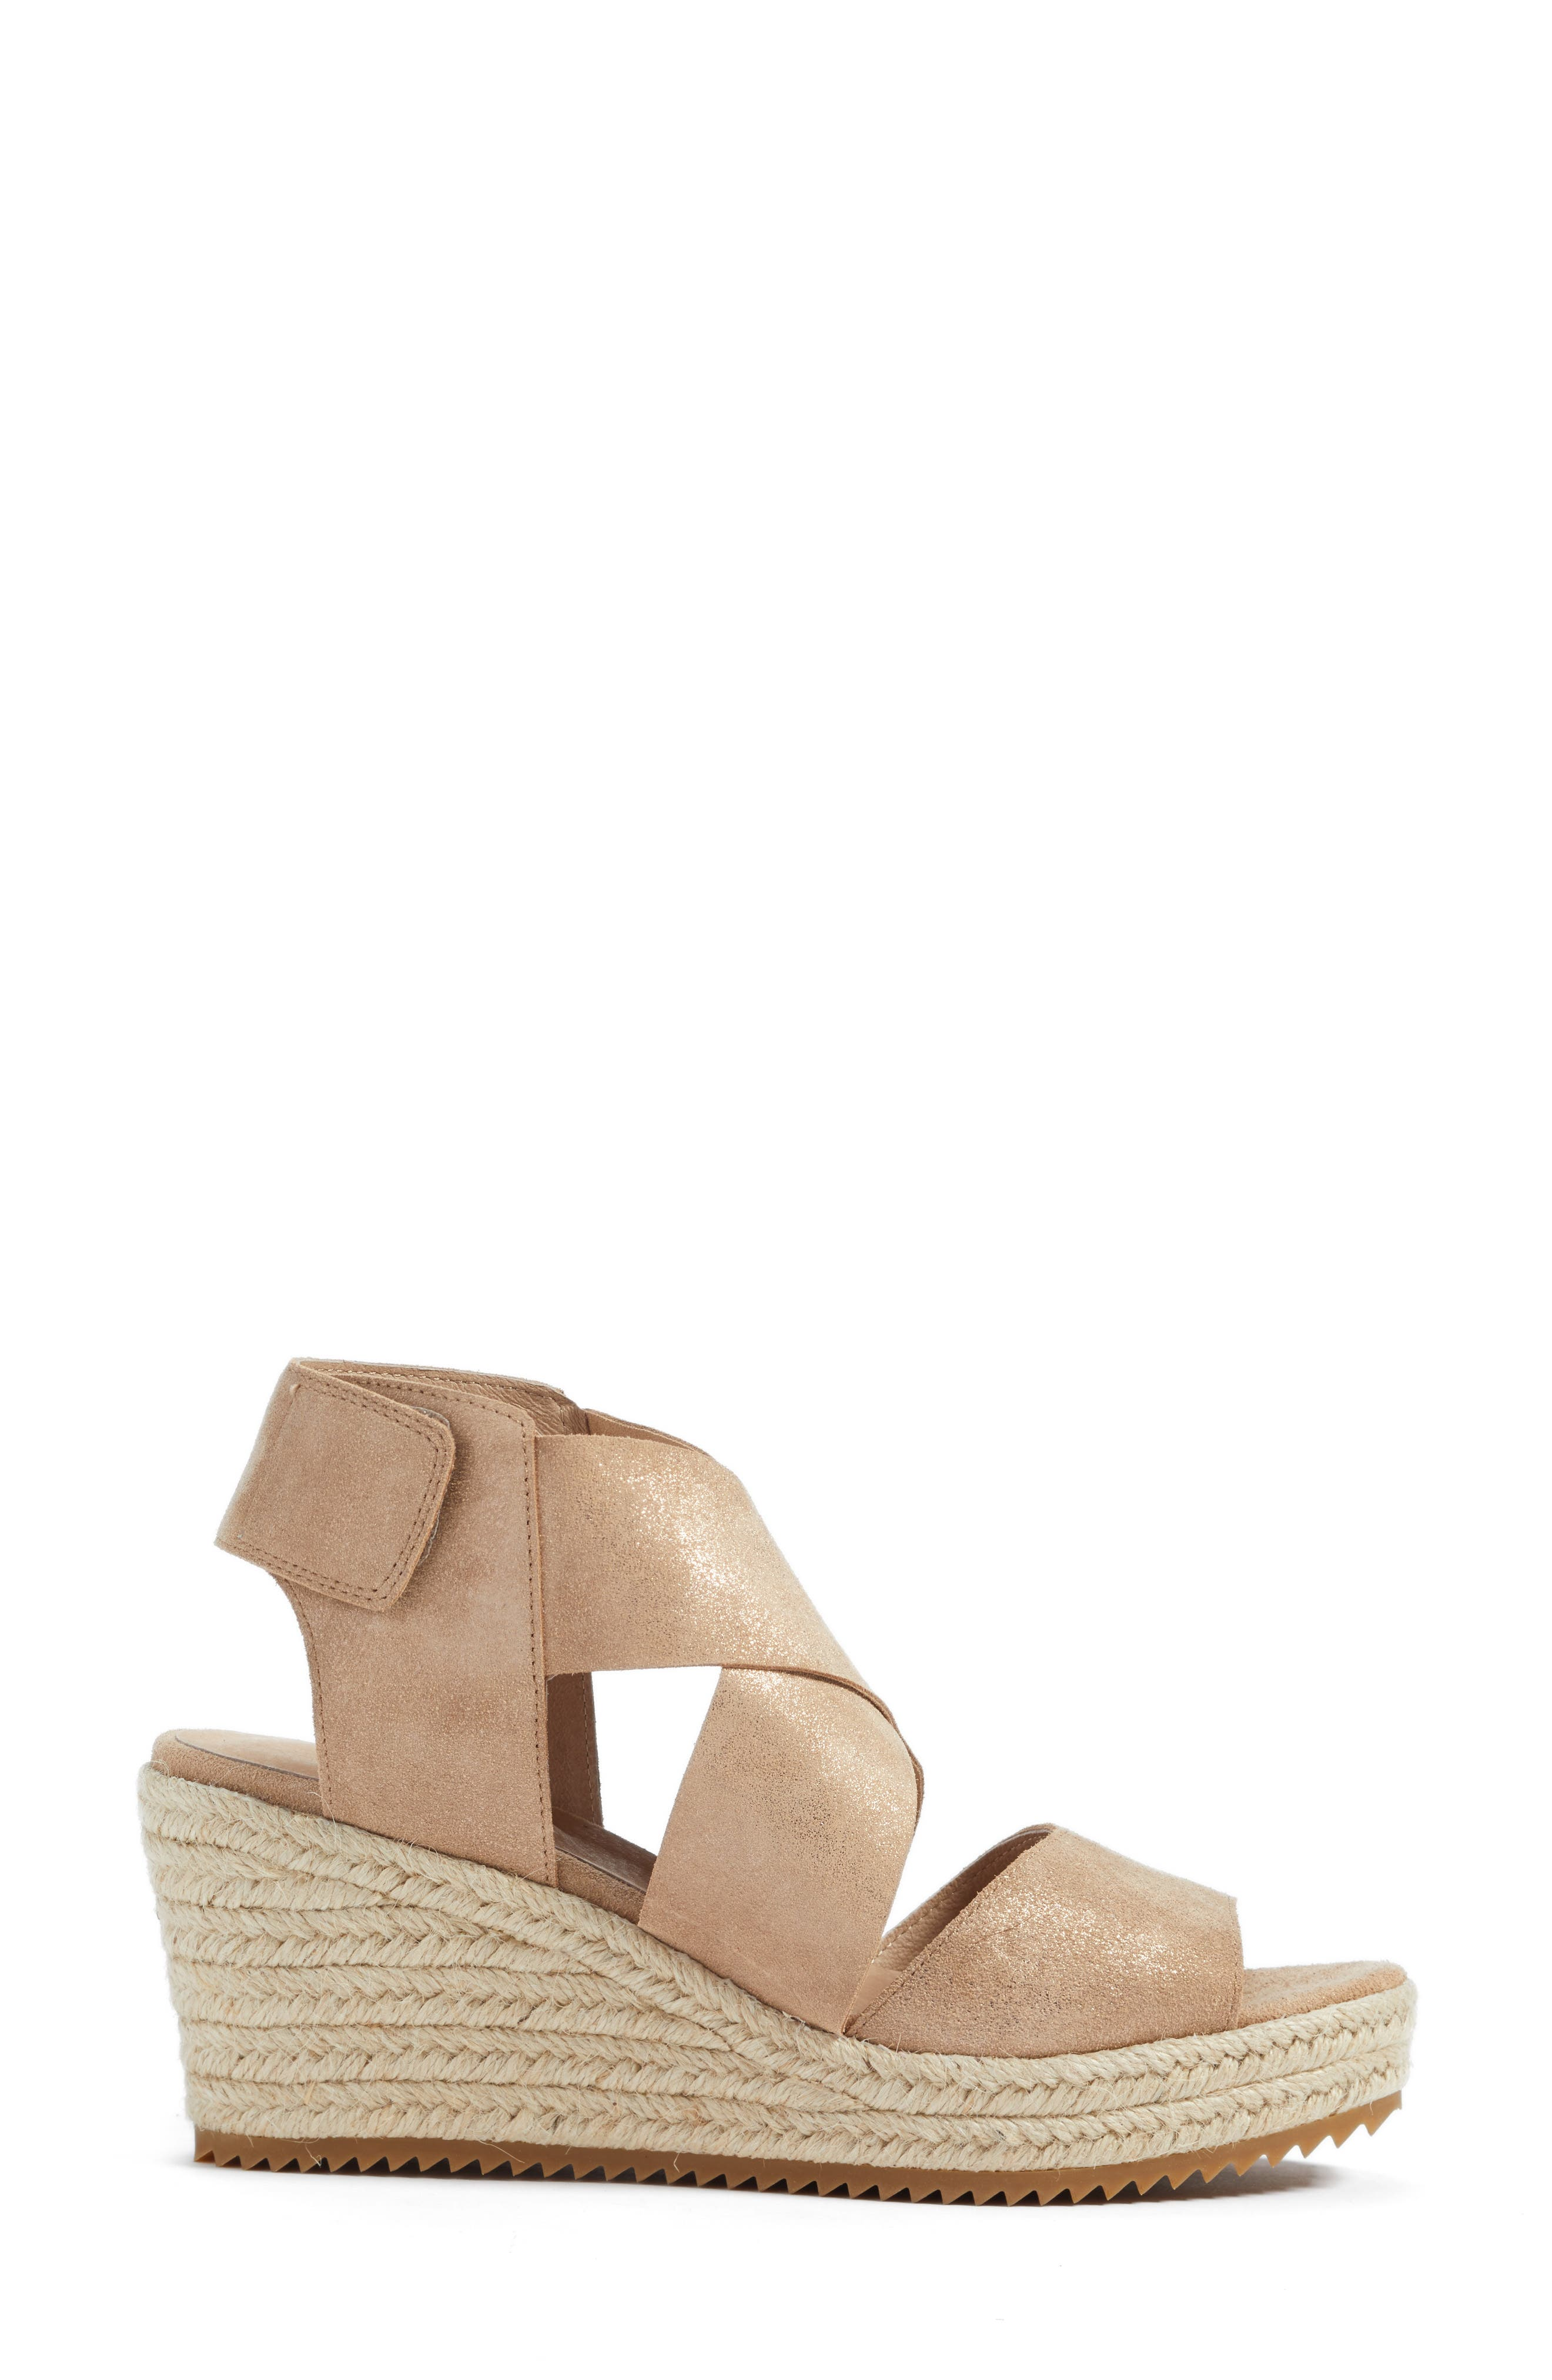 Alternate Image 3  - Eileen Fisher 'Willow' Espadrille Wedge Sandal (Women)